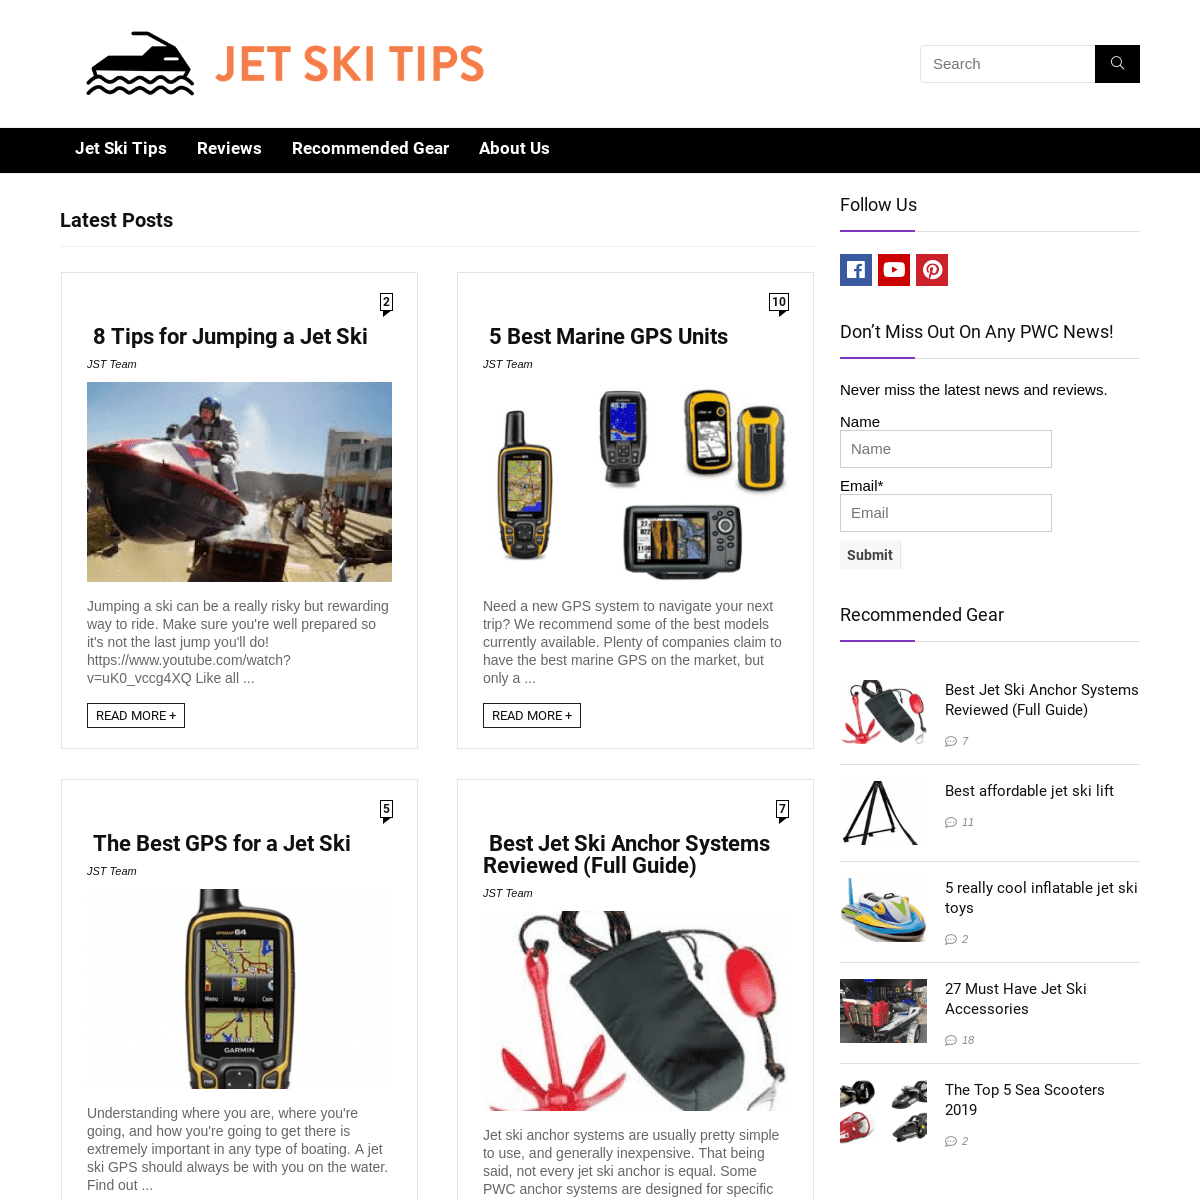 ArchiveBay.com - jetskitips.com - JetSkiTips.com - The -go to- site for information on jet skis, waverunners, and all things PWC.